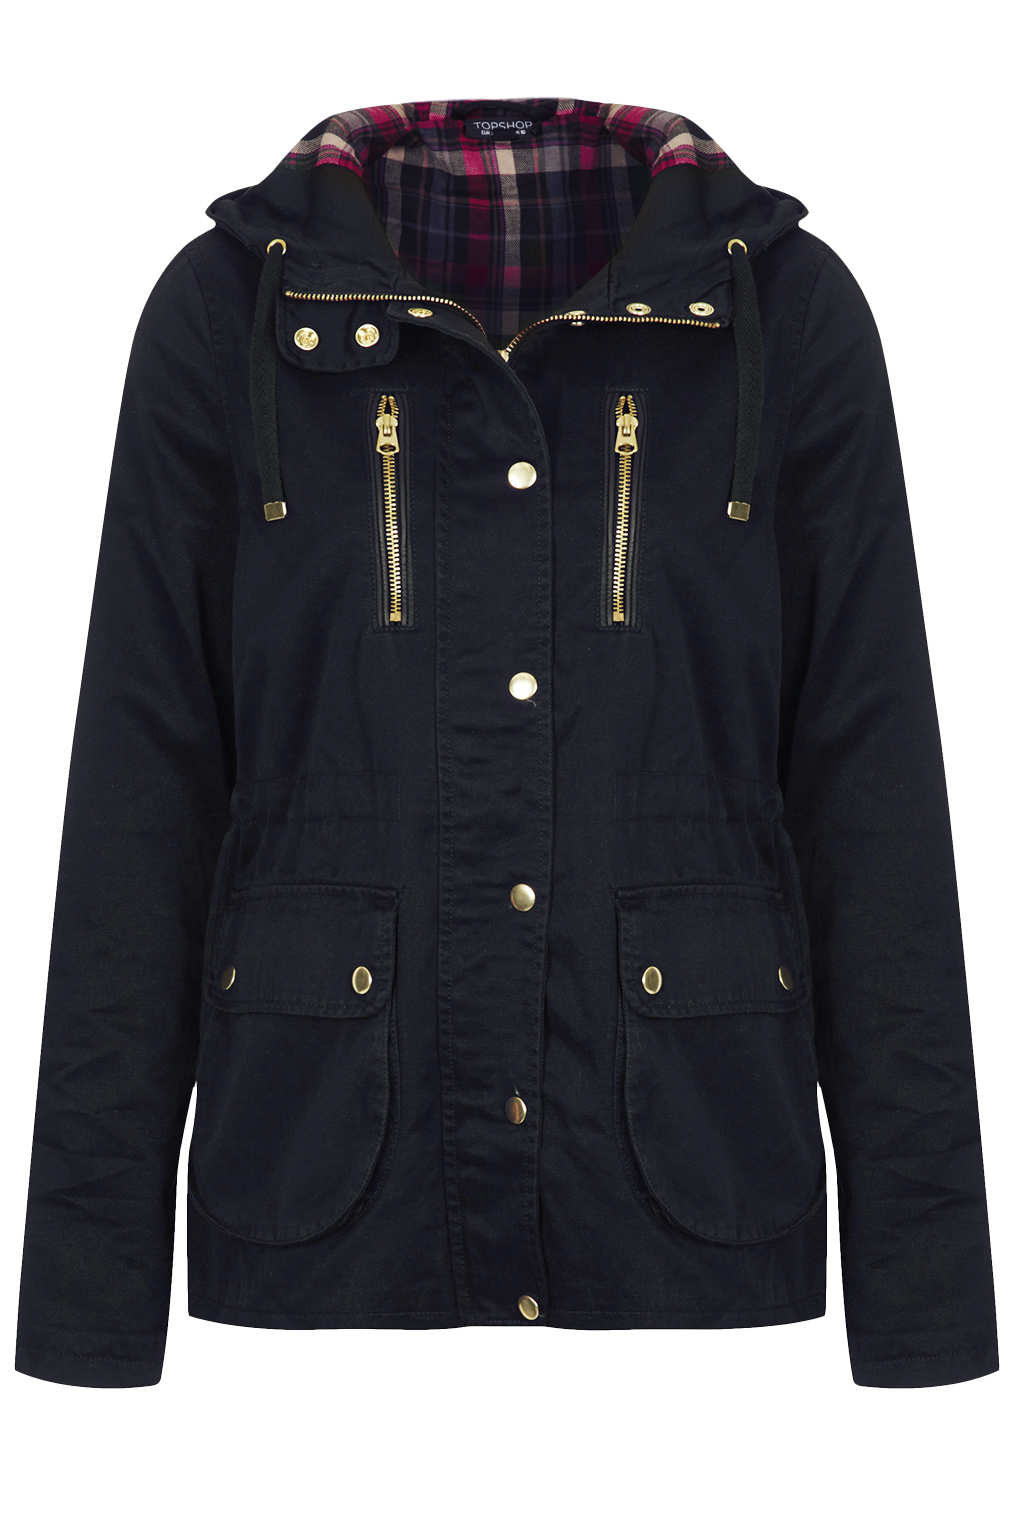 Topshop Hooded Lightweight Jacket in Blue | Lyst